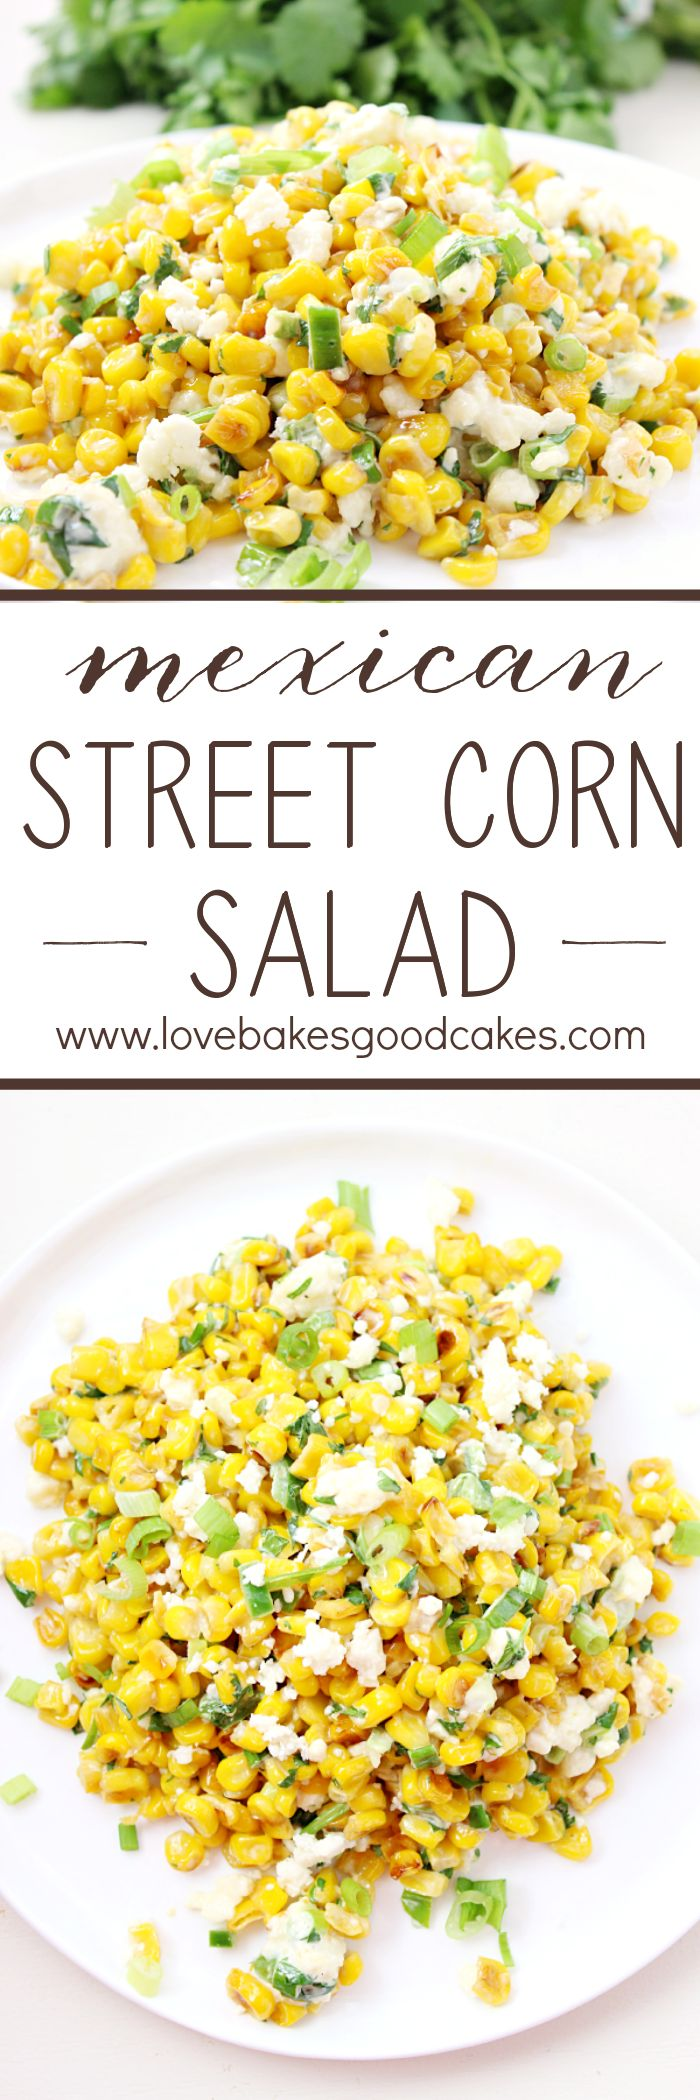 All of the flavor of Elote in a delicious and easy Mexican Street Corn Salad! This is sure to become a favorite side dish with any Mexican meal! Great for summer fresh corn!: